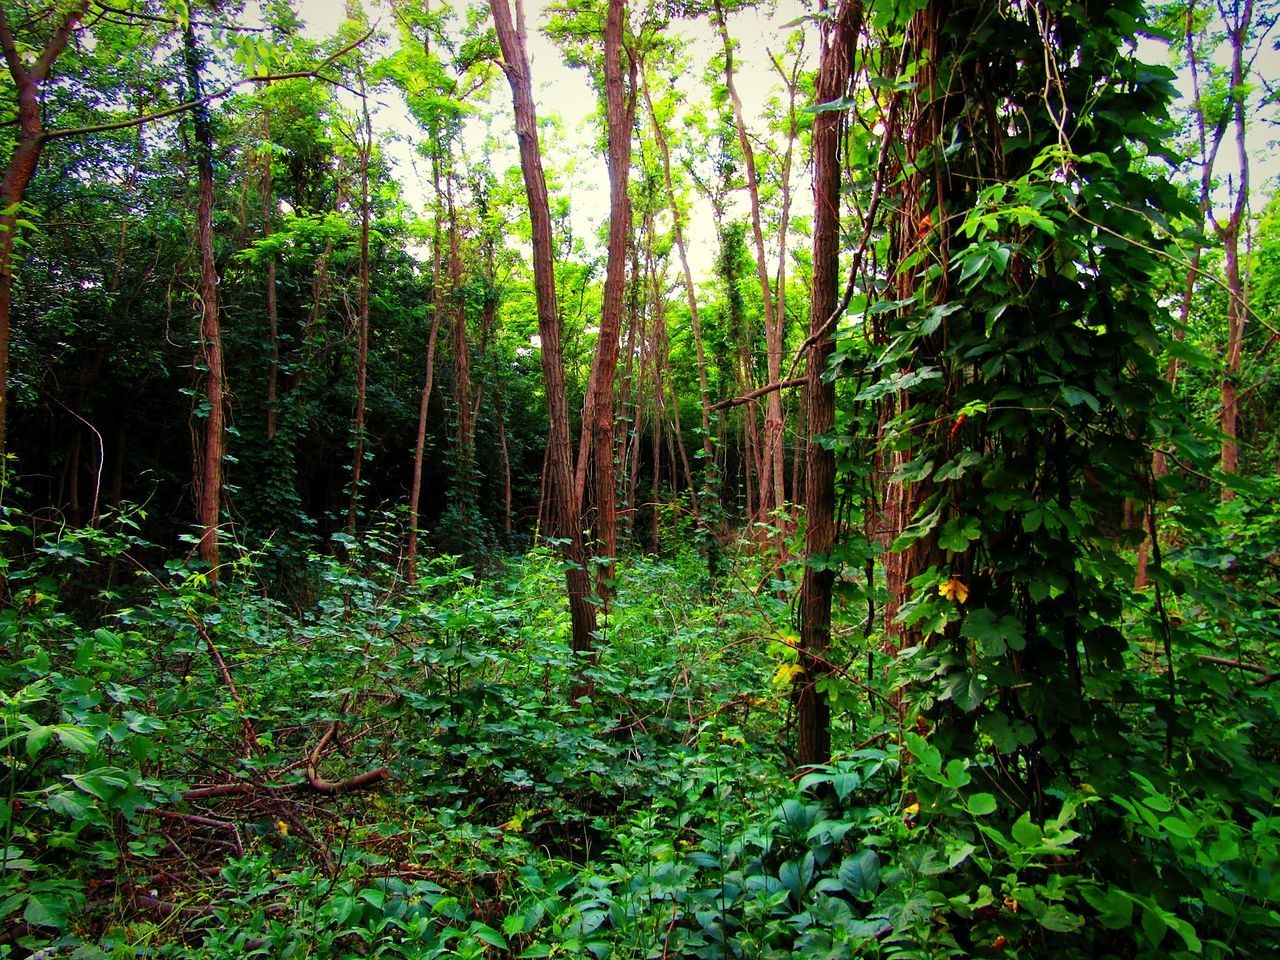 forest, tree, nature, growth, tranquility, lush foliage, woodland, day, beauty in nature, plant, no people, outdoors, scenics, tree area